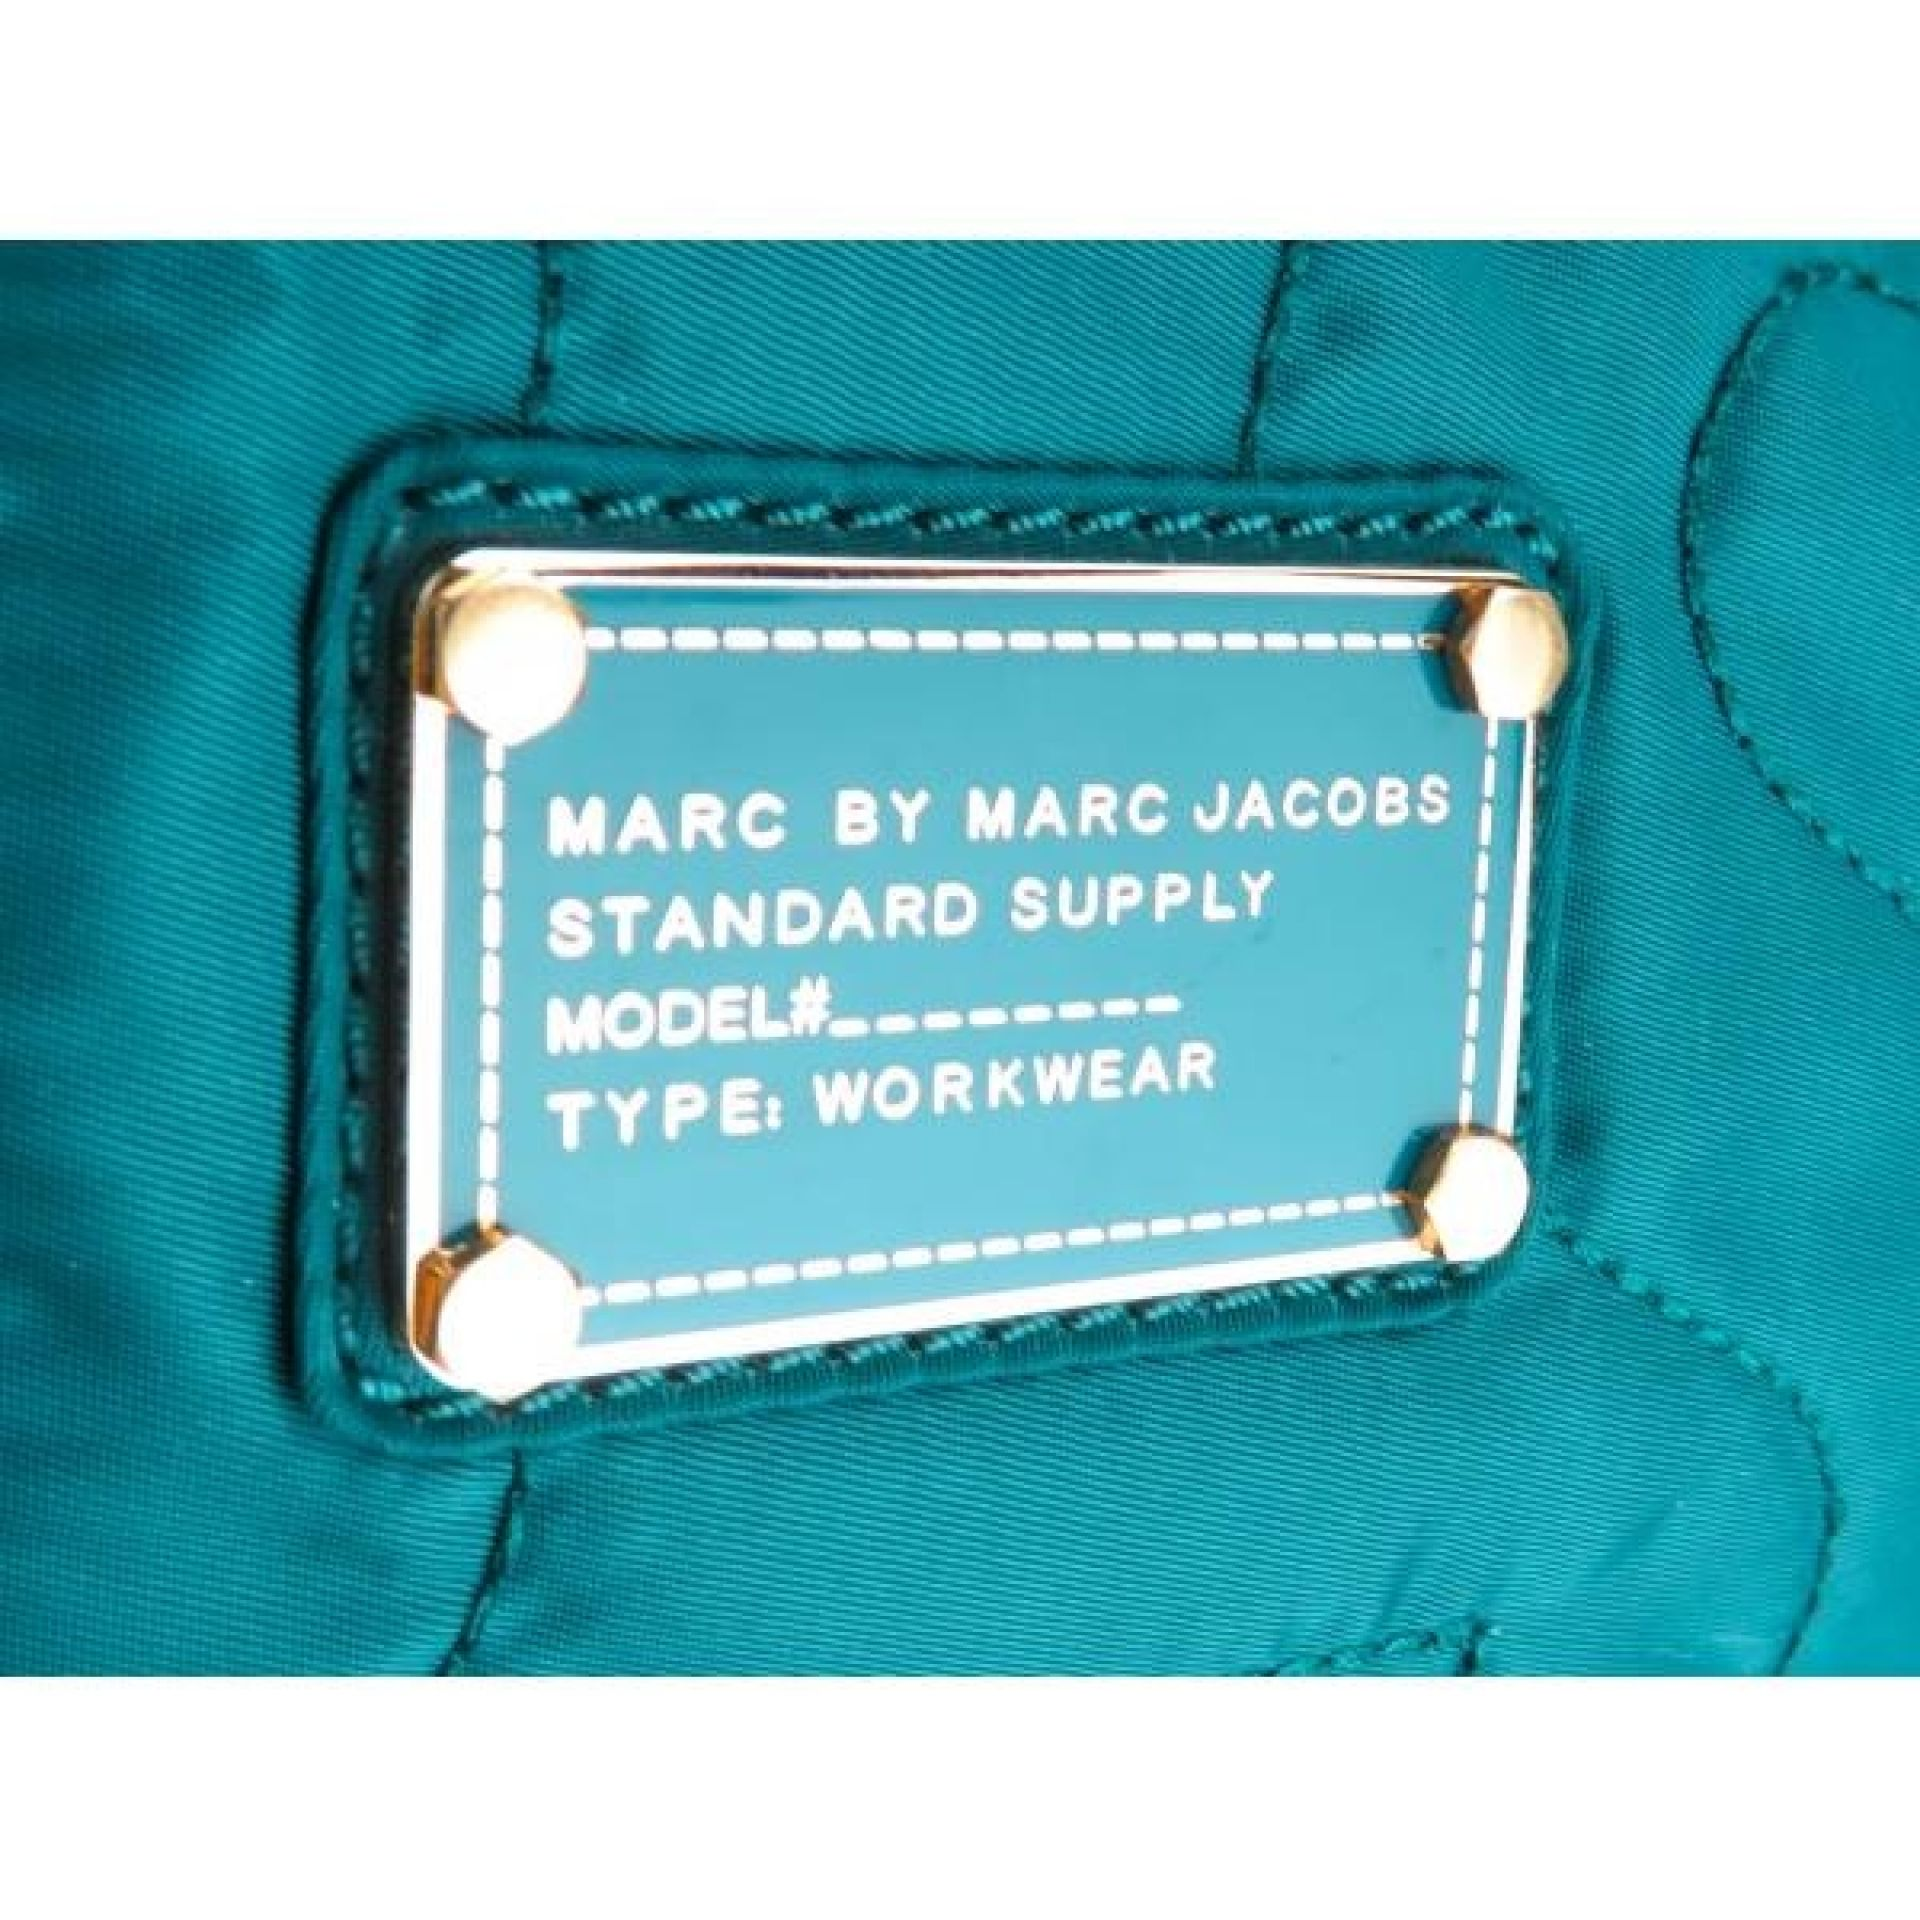 Marc by Marc Jacobs Teal Nylon Large Pretty Hobo Shoulder Bag